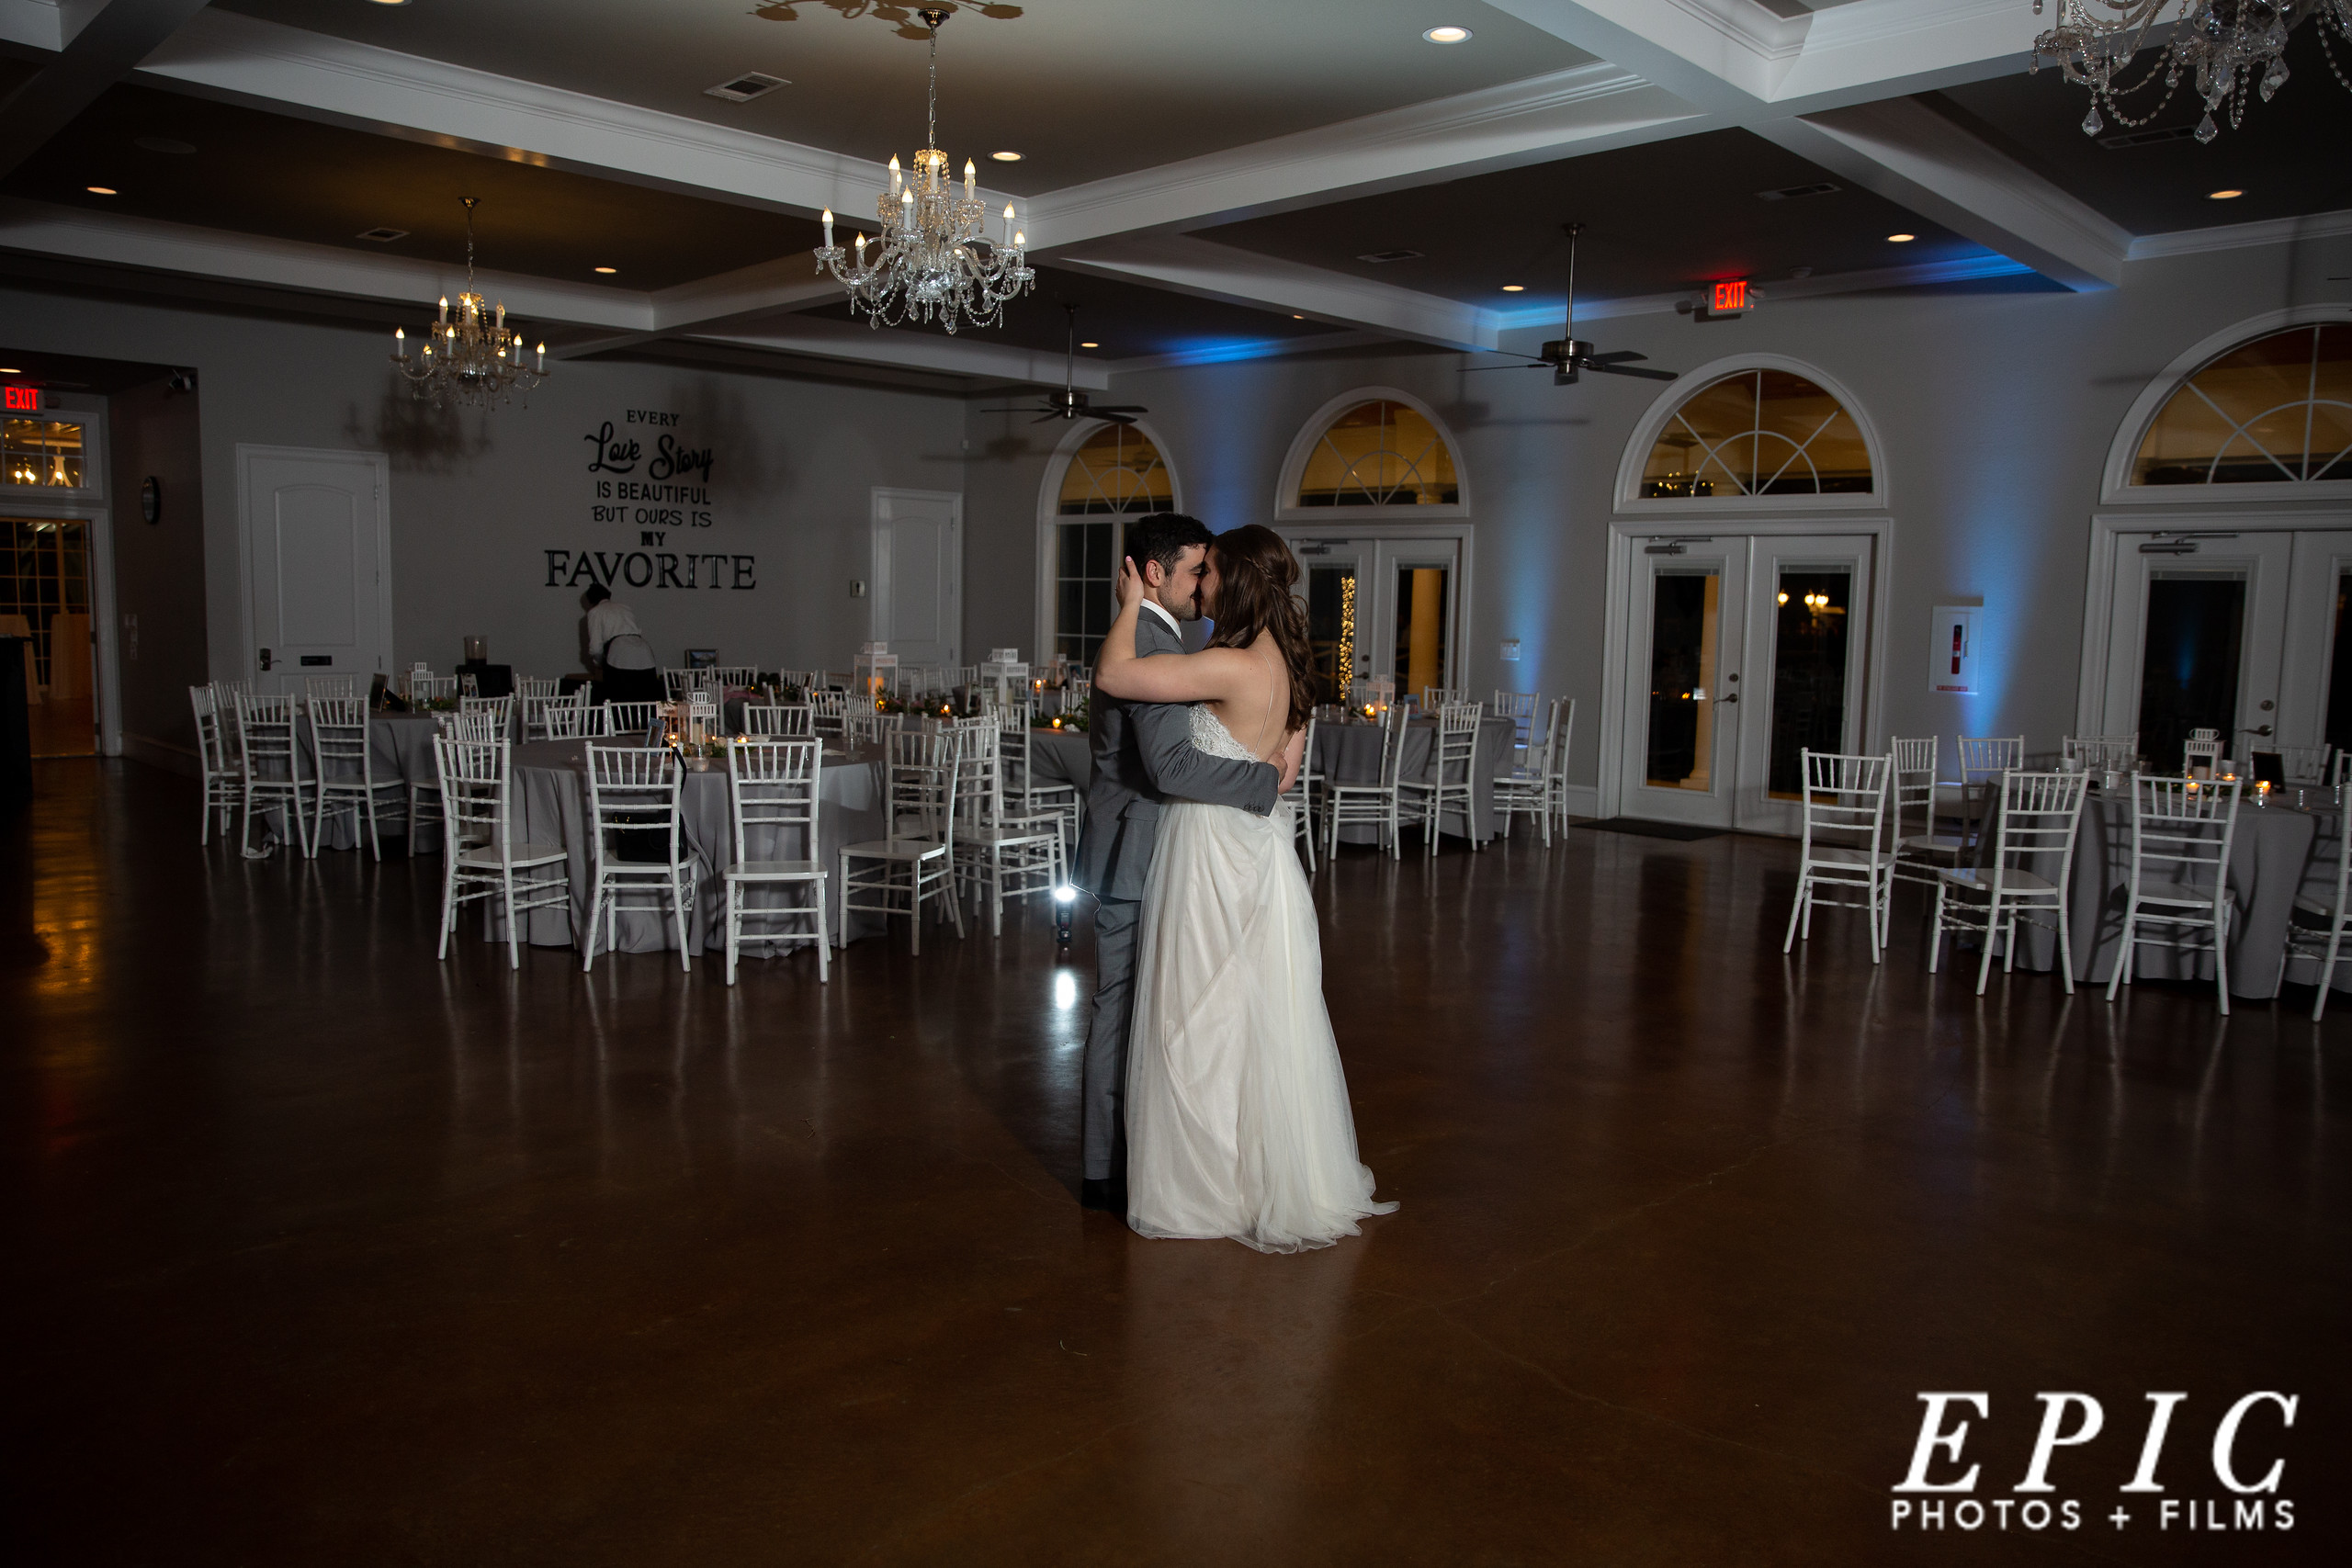 newlywed couple sharing a private last dance on the dancefloor at Willow Creek after all the guests have gone